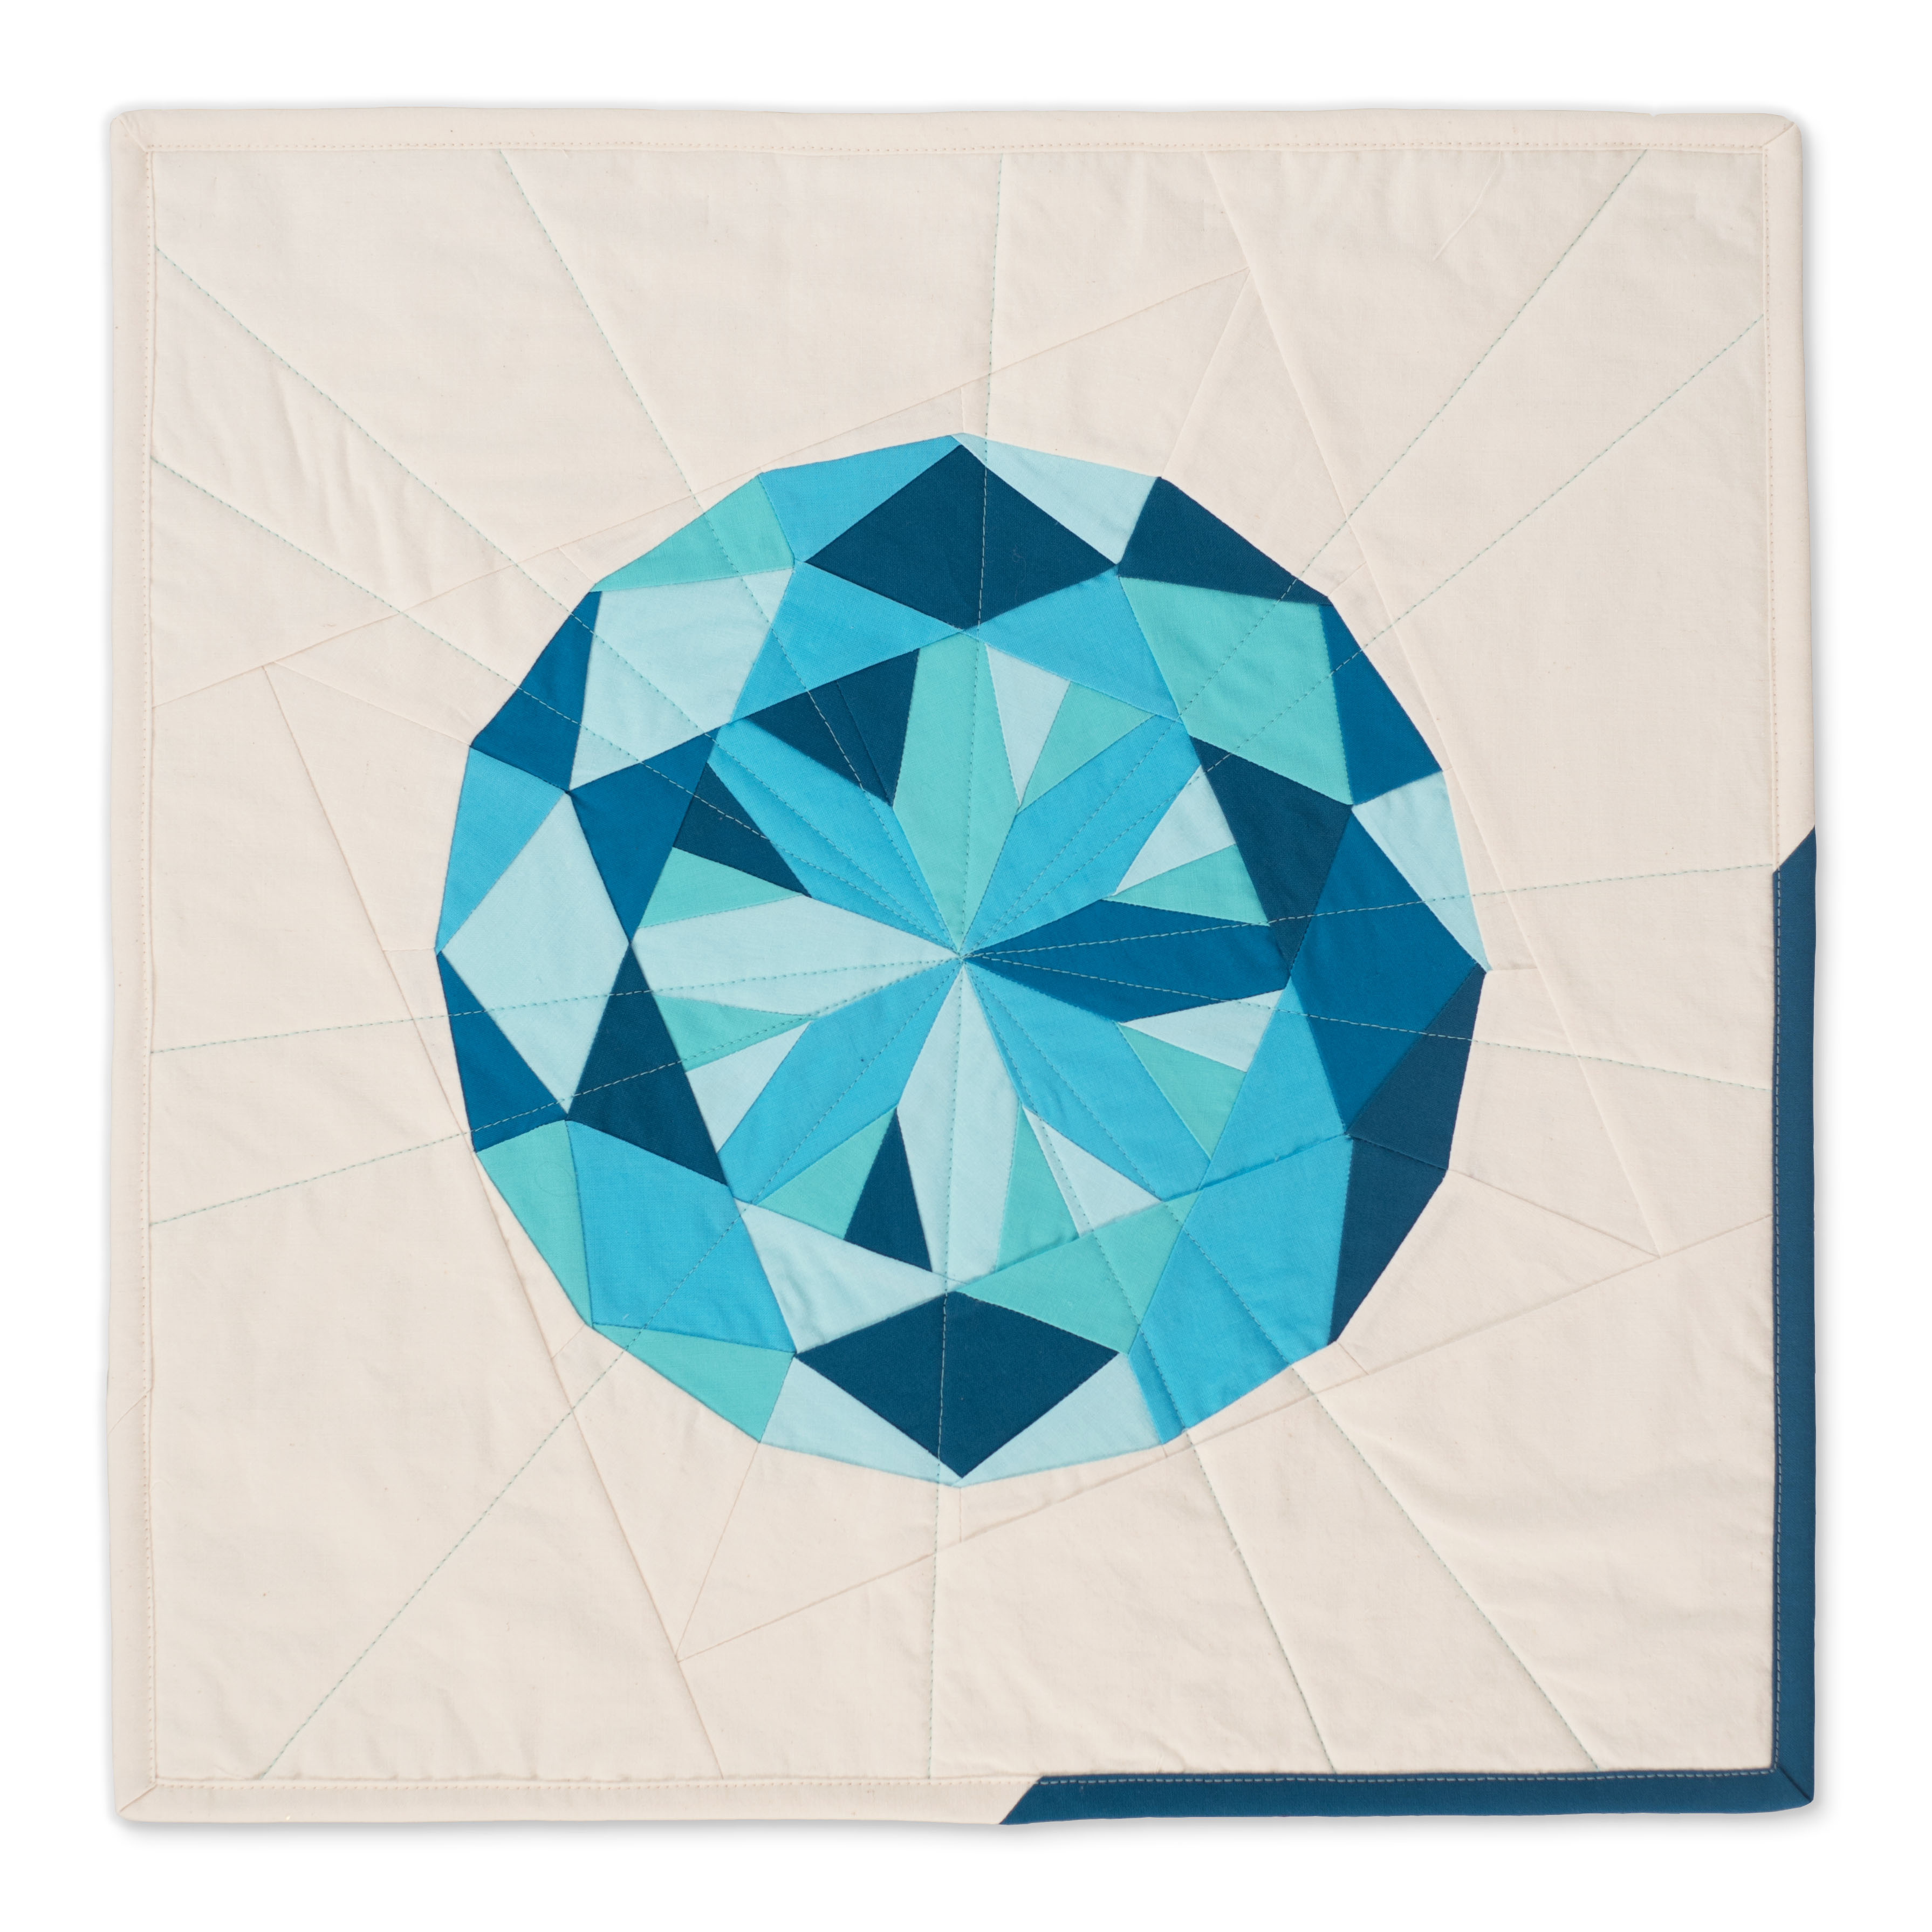 "<b>Aquamarine</b><br>20"" x 20""<br>Cotton, cotton batting<br><a href=""mailto:hello@3rdstoryworkshop.com?Subject=Aquamarine%20Gemology"" target=""_top"" rel=""noopener noreferrer"">Inquire</a>"